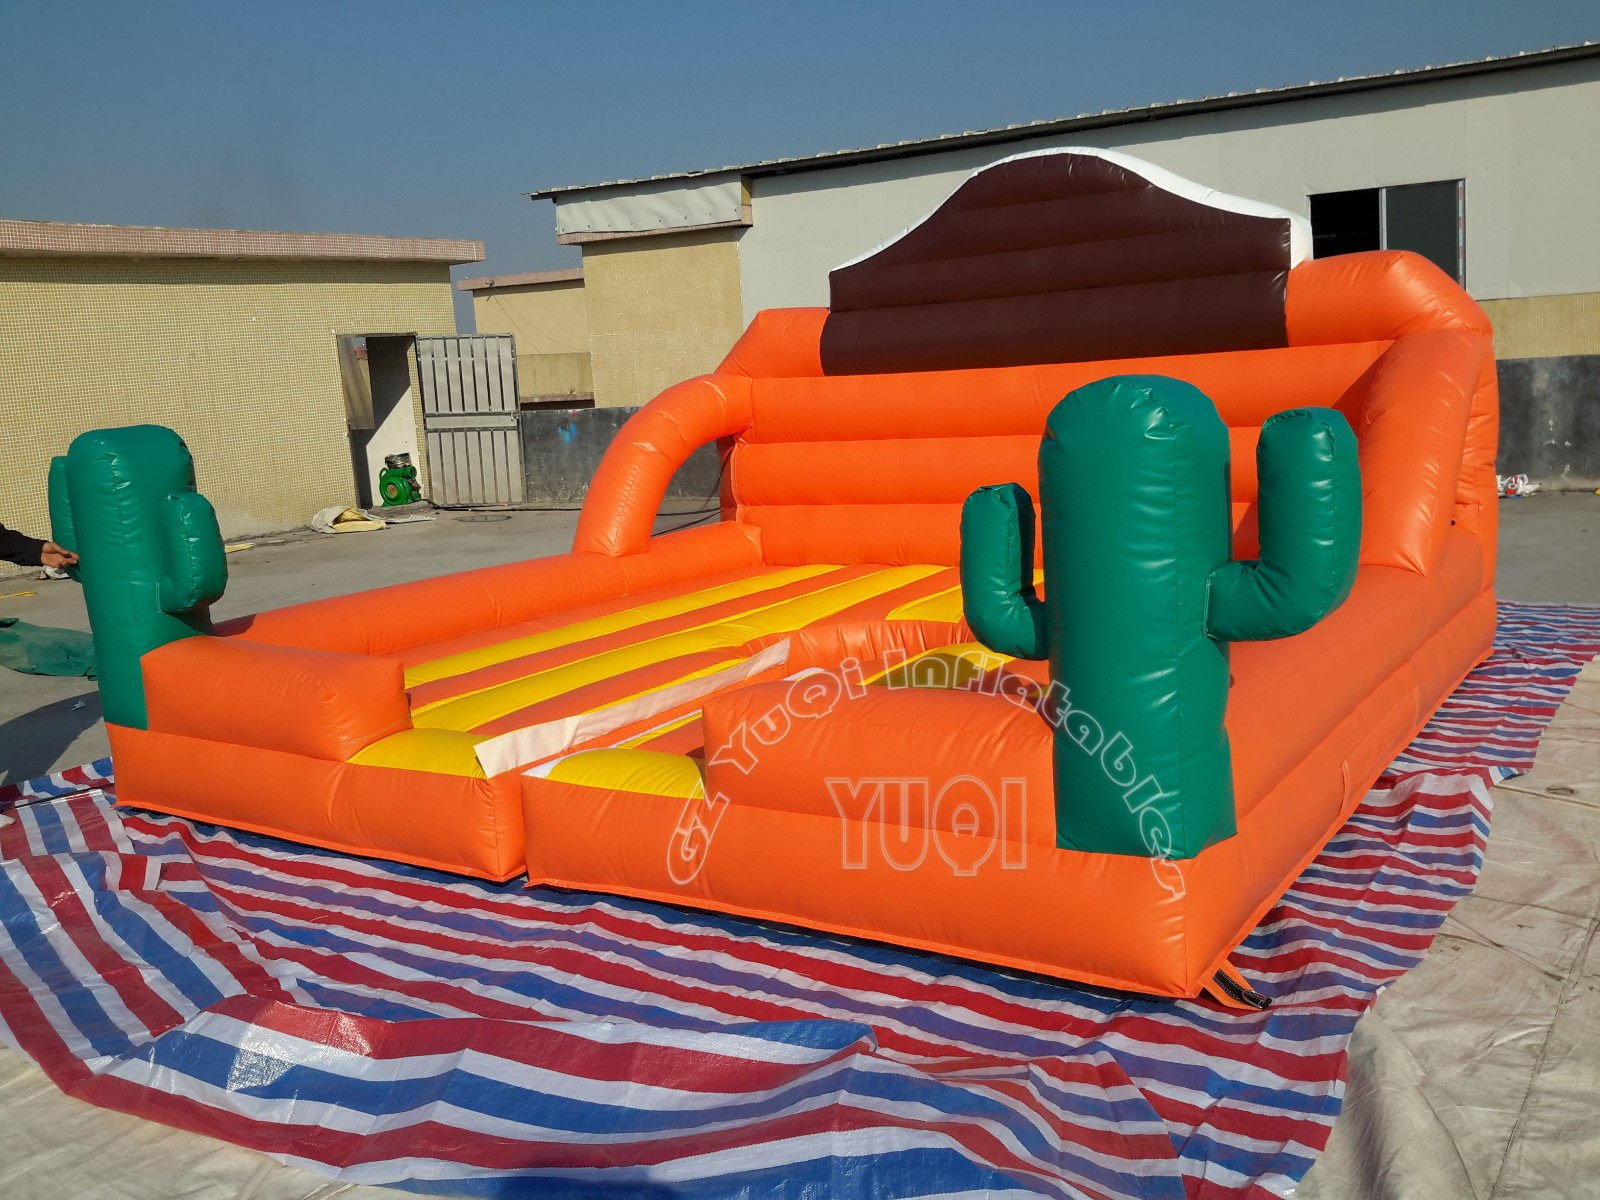 YUQI-Yq676 Interesting Inflatable Bull Machine Inflatable Sports Game